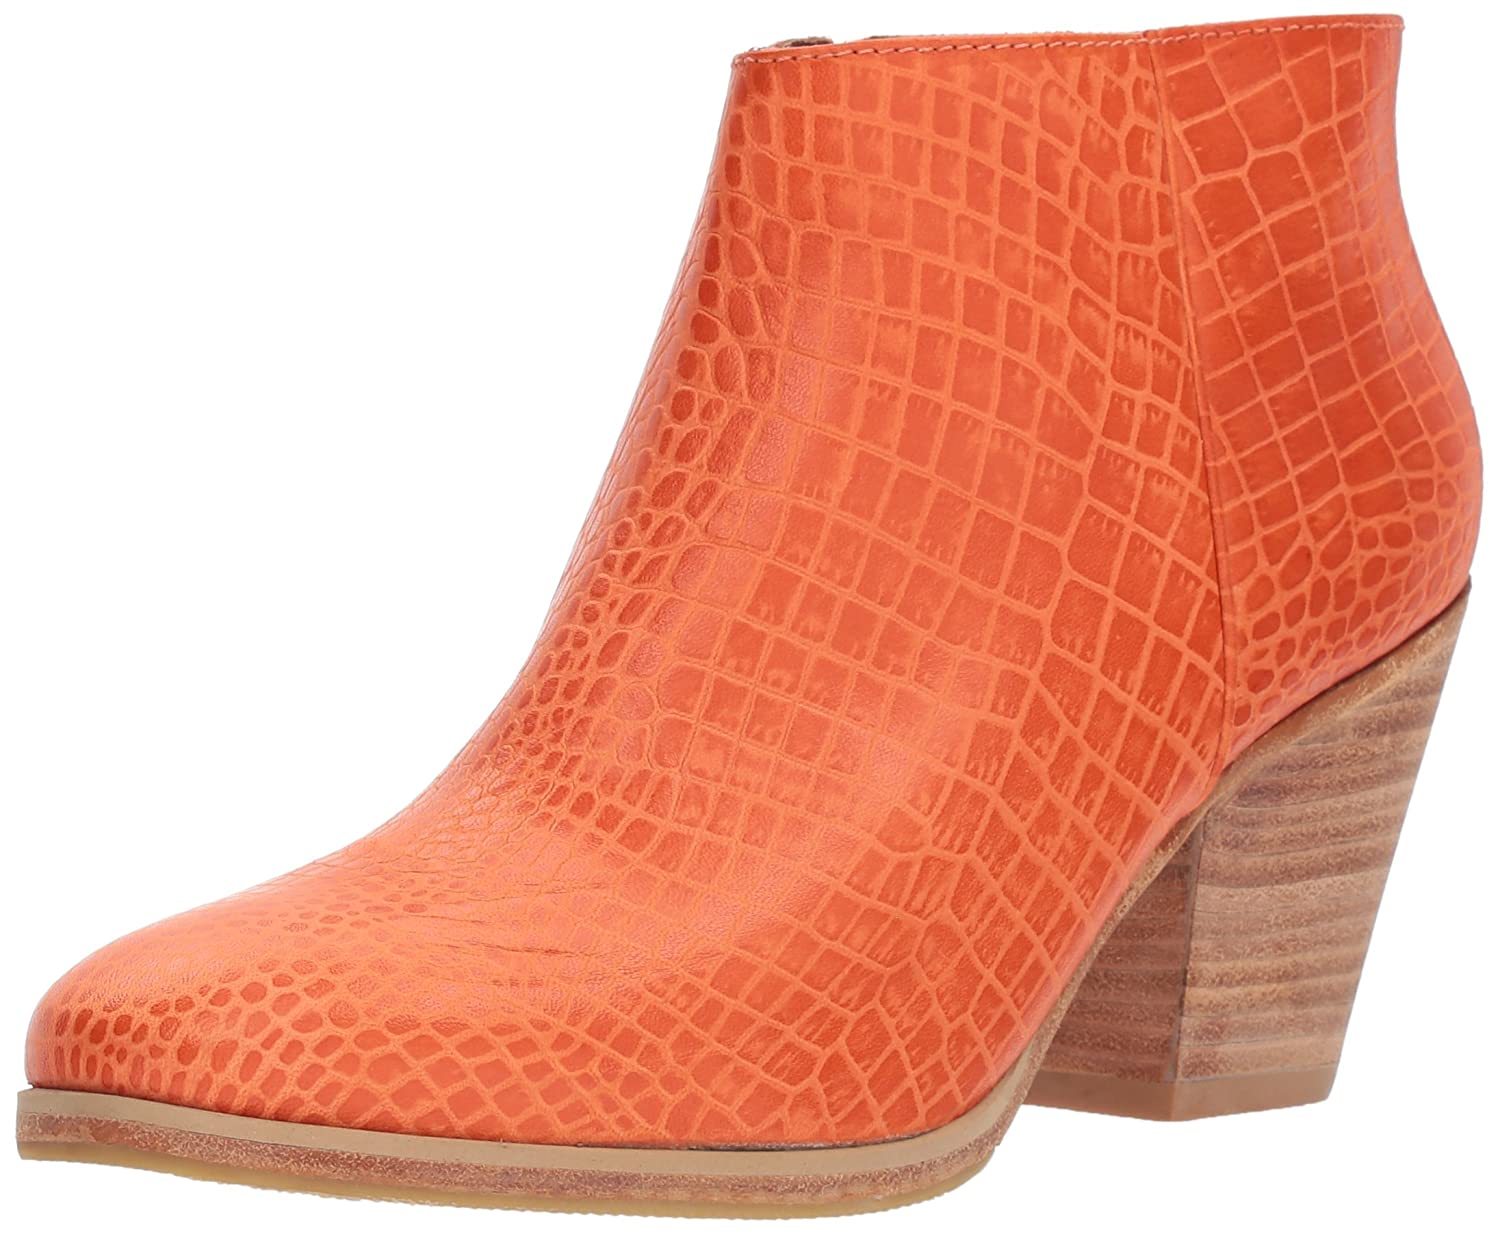 Rachel Comey Women's Mars Ankle Boot B077756DVR 8 B(M) US|Persimmon